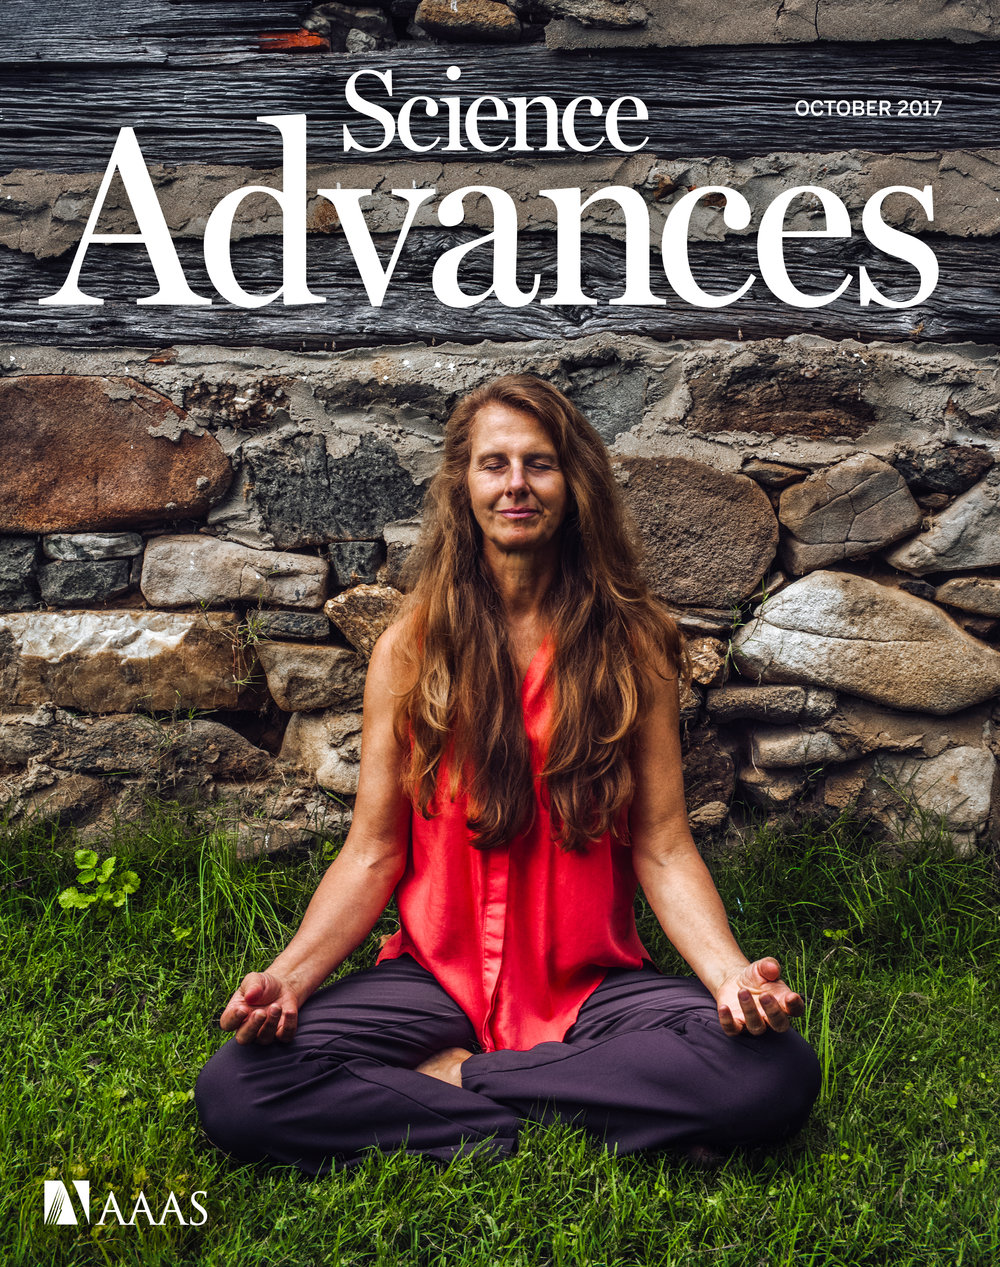 Dr. Deborah Norris, Founder of The Mindfulness Center, graces the cover of Science Advances Magazine.